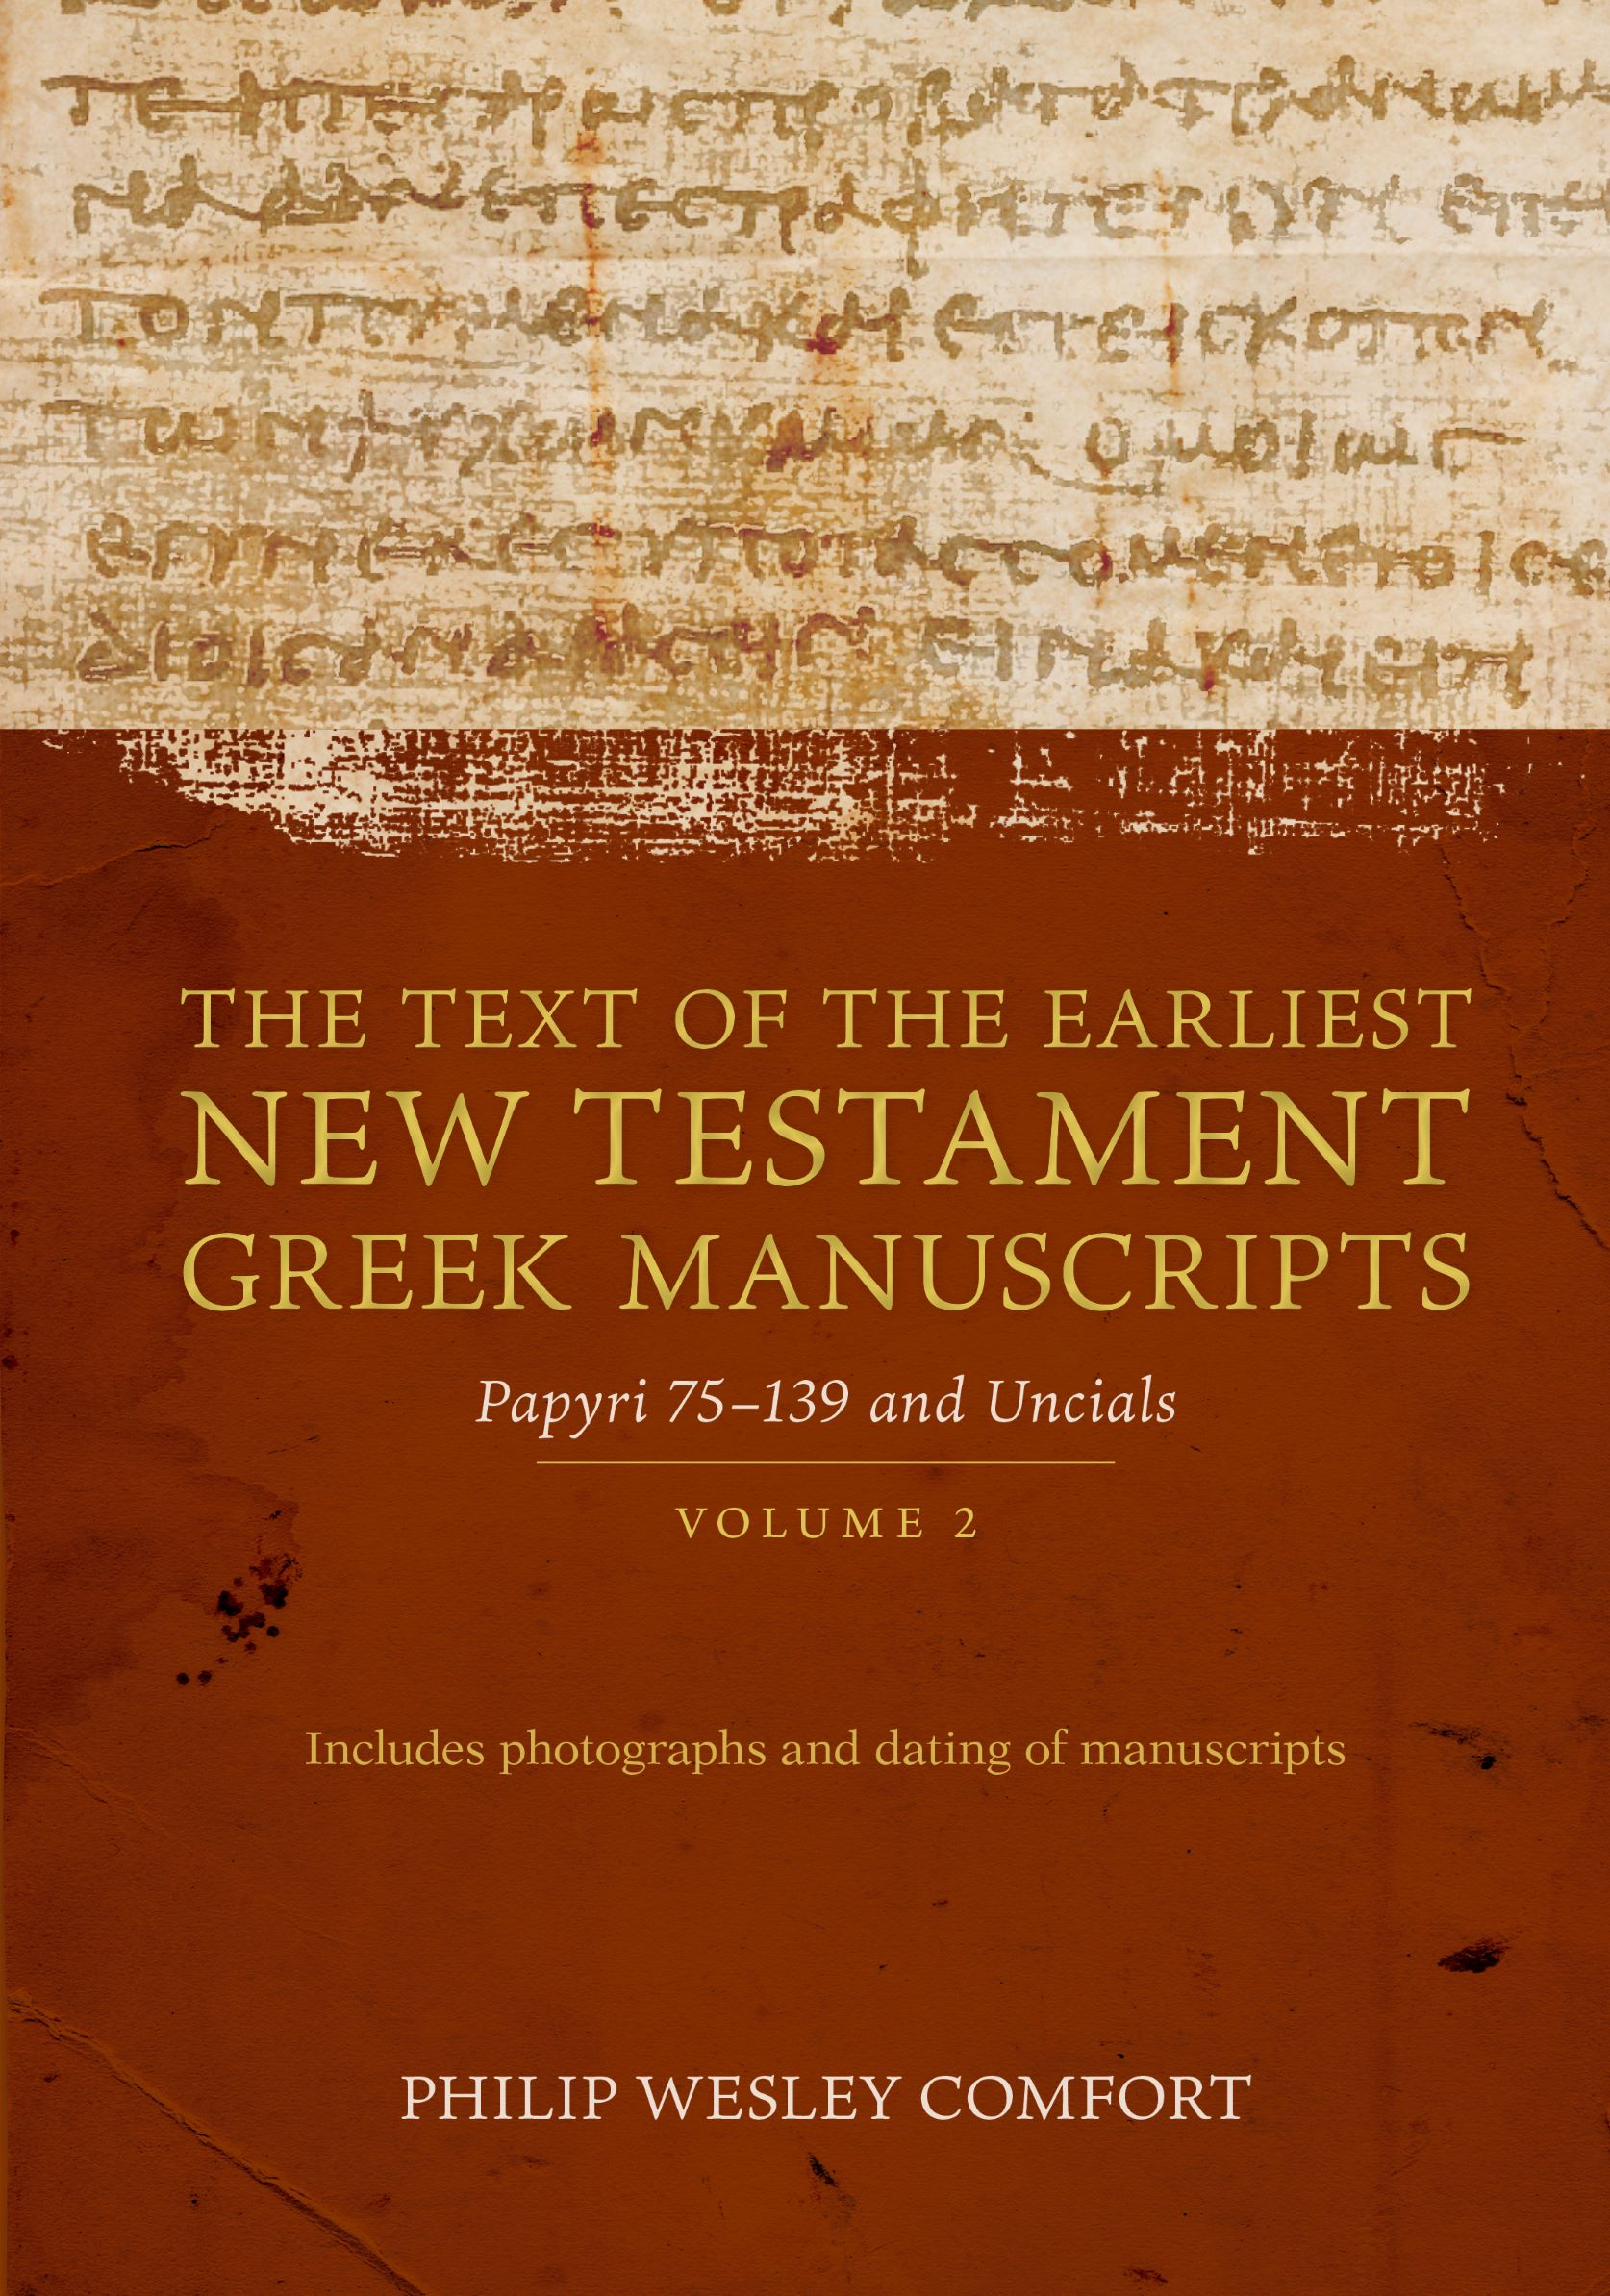 The Text of the Earliest New Testament Greek Manuscripts, Volume 2